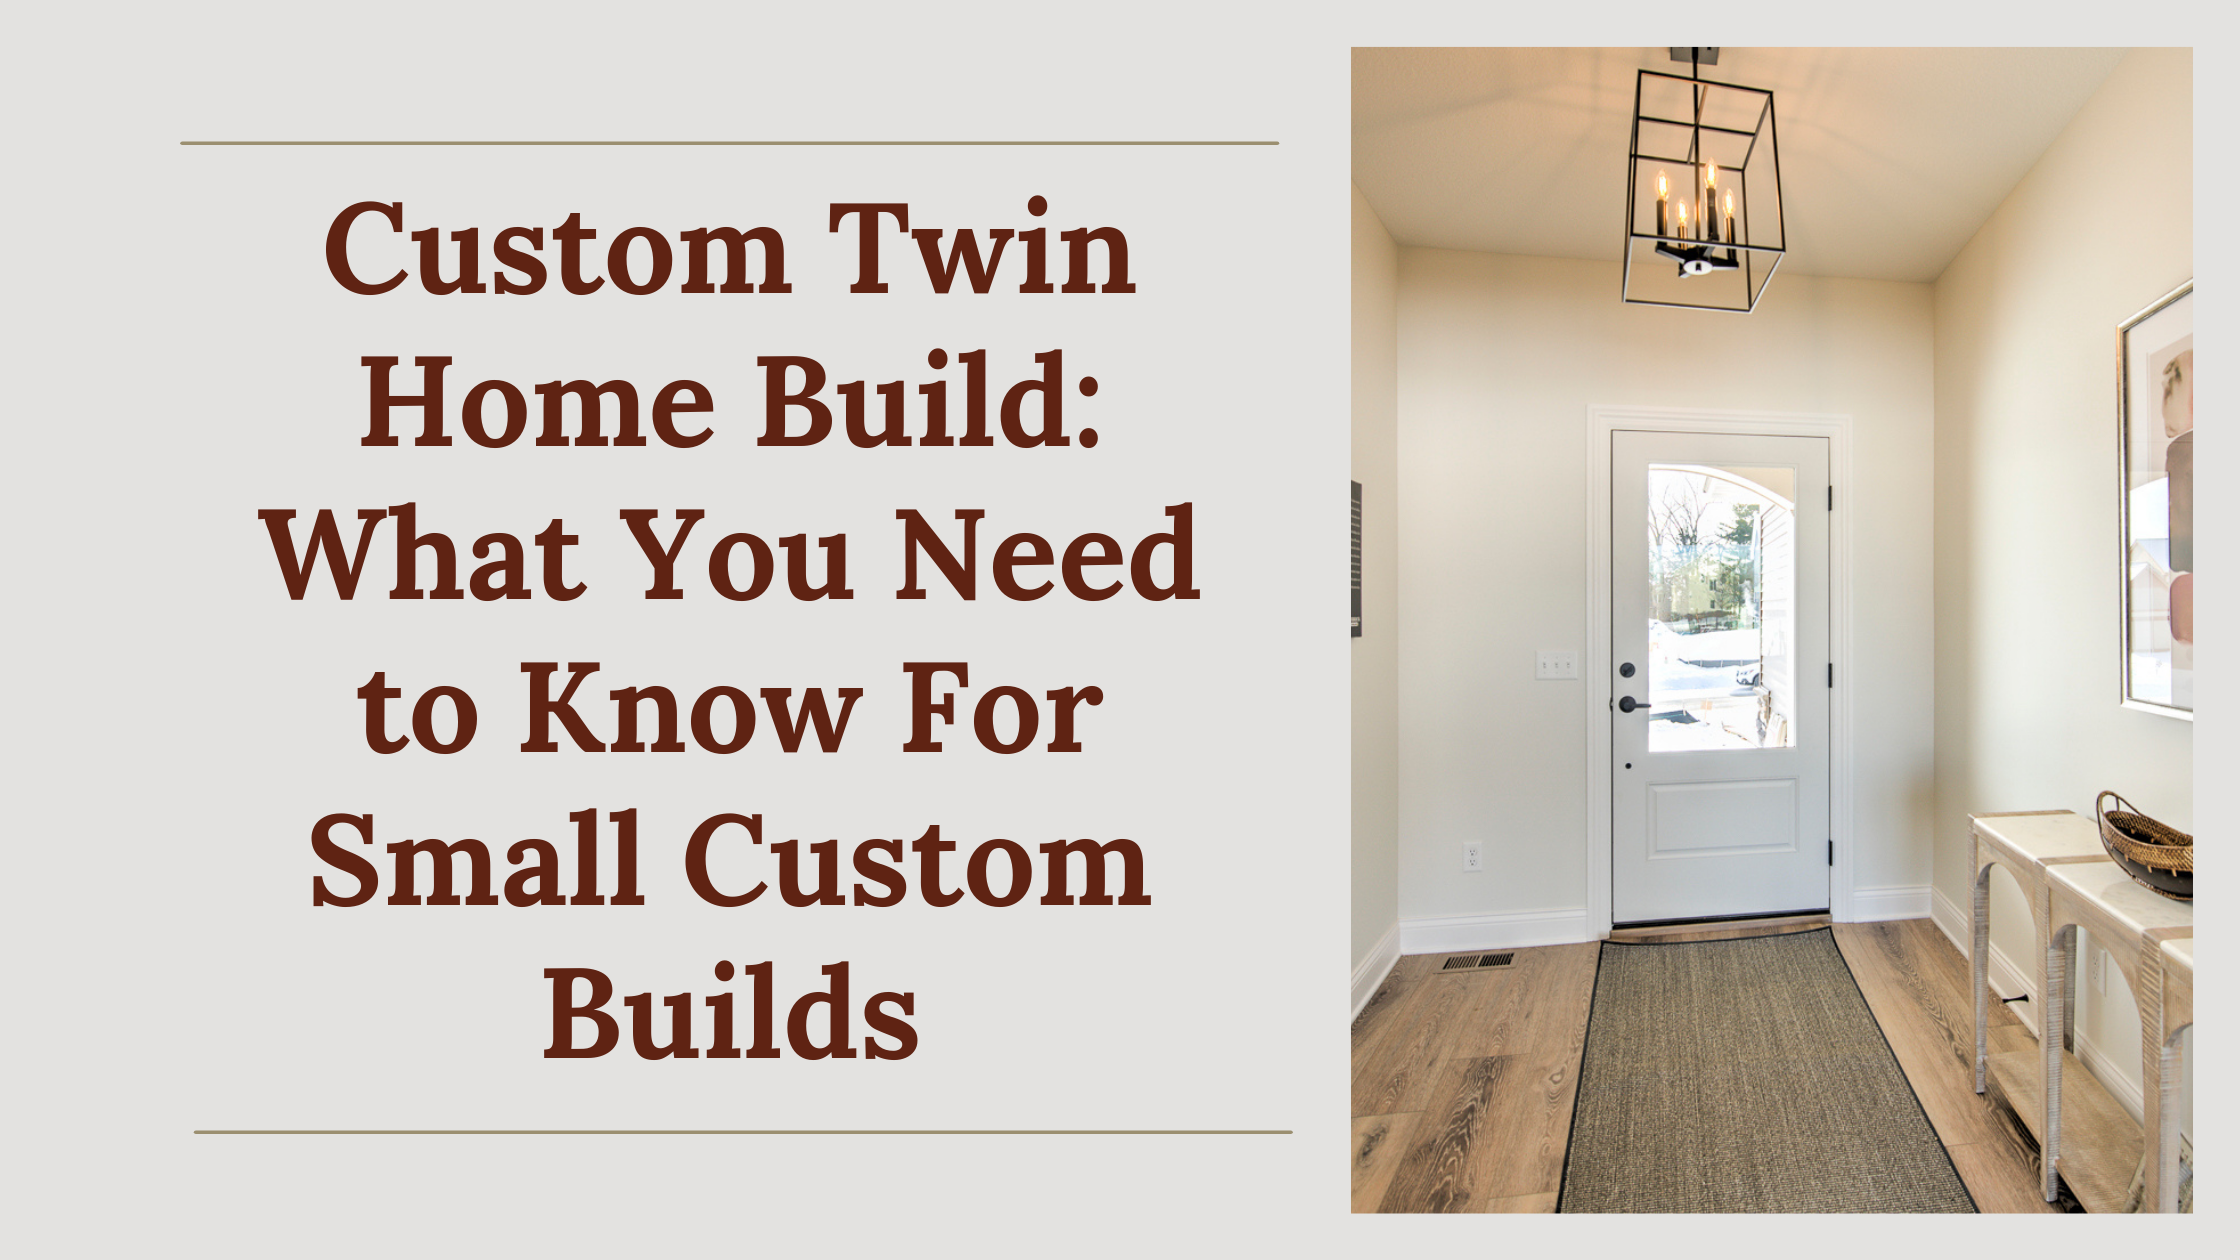 Custom Twin Home Build - What You Need to Know For a Smaller Custom Build